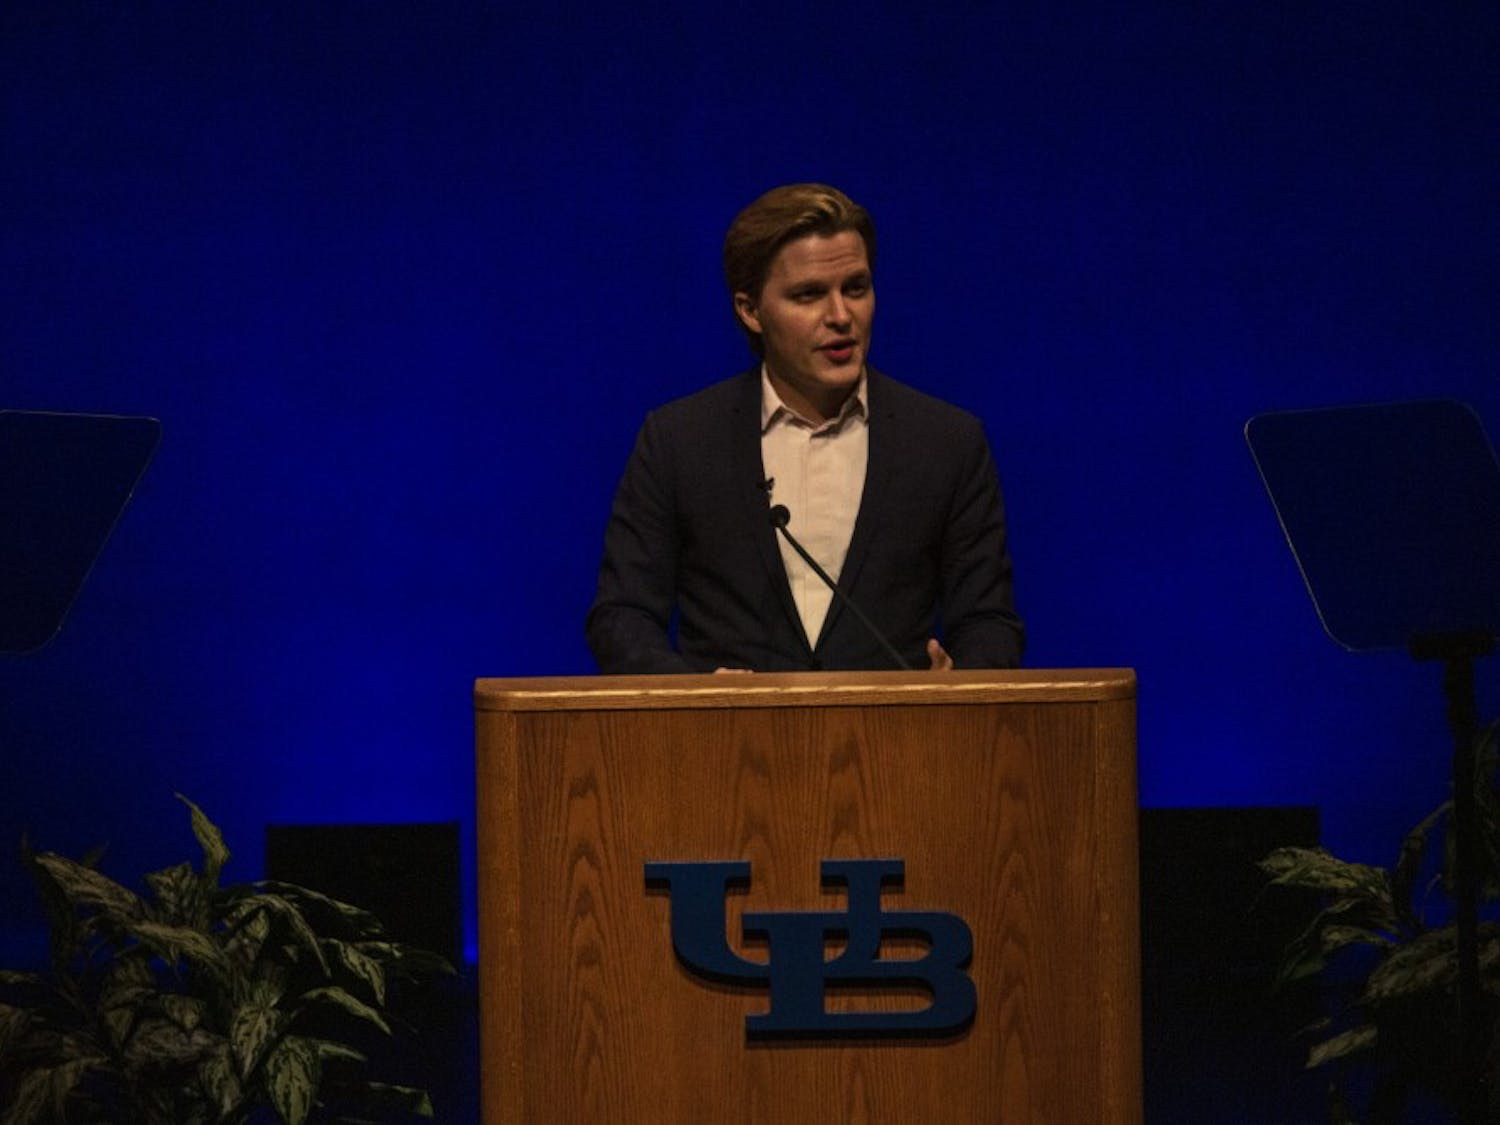 Pulitzer Prize-winning journalist Ronan Farrow spoke about the power of journalism and diplomacy as part of UB's Distinguished Speaker Series on Thursday night in the Center for the Arts.